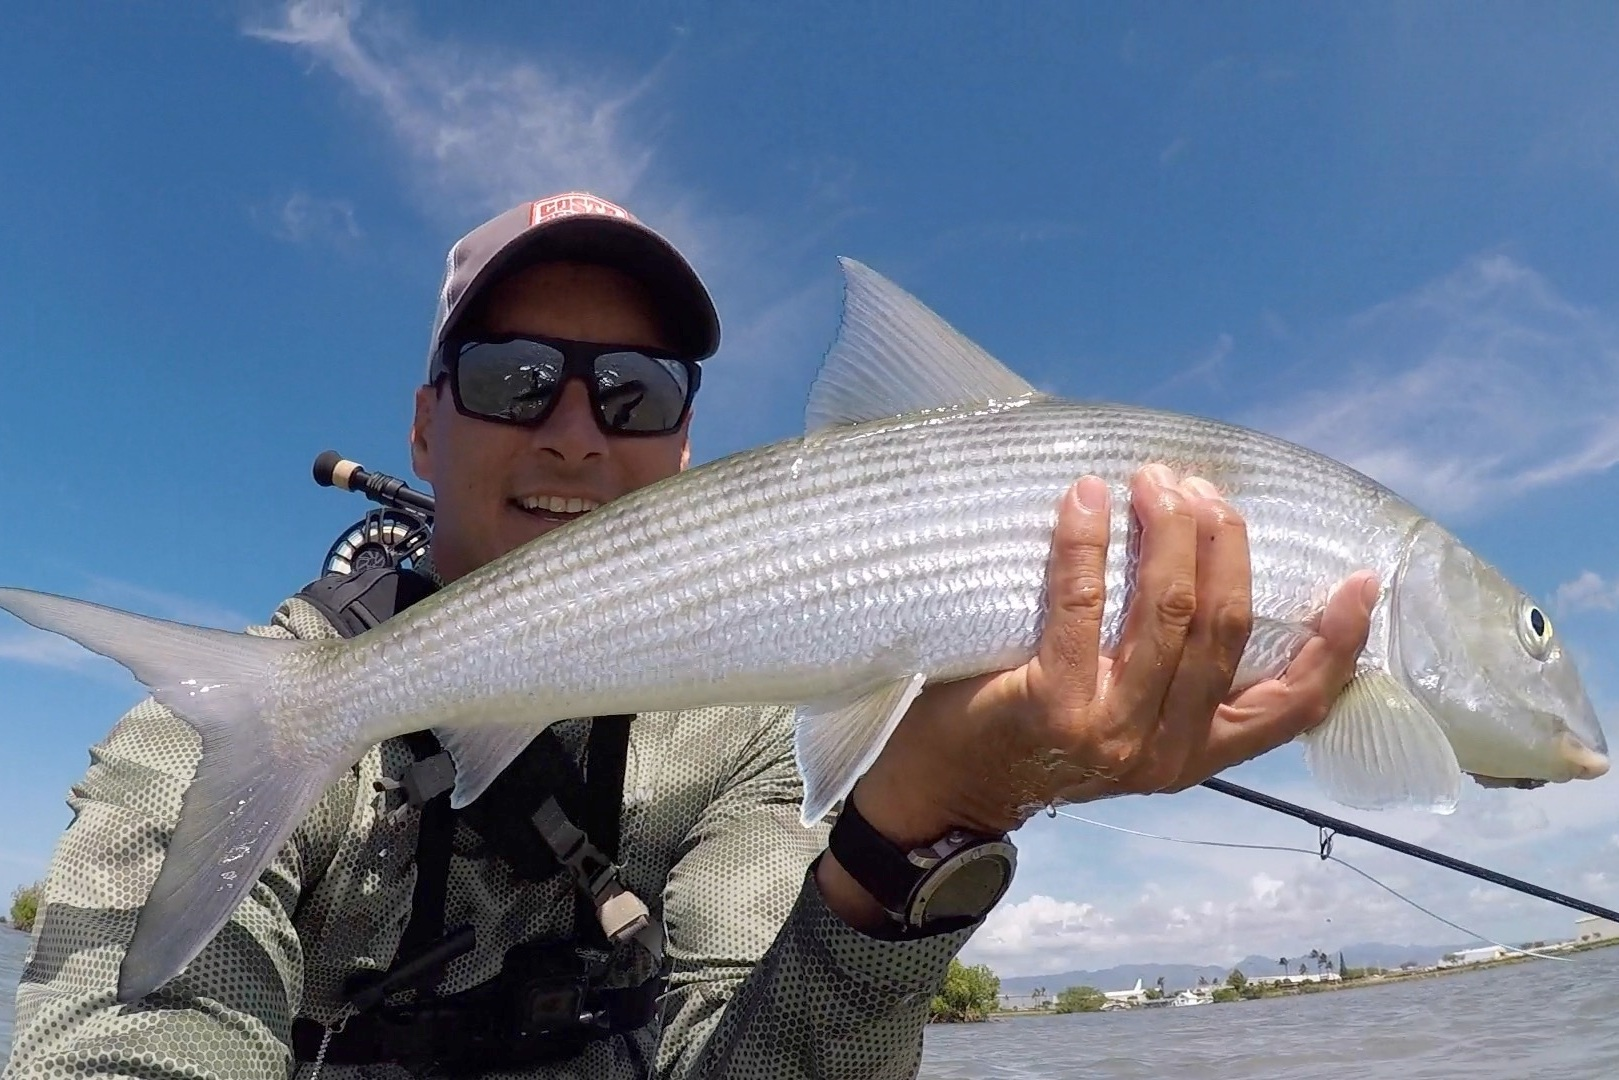 Makani Christensen, Fly Fishing for Bonefish